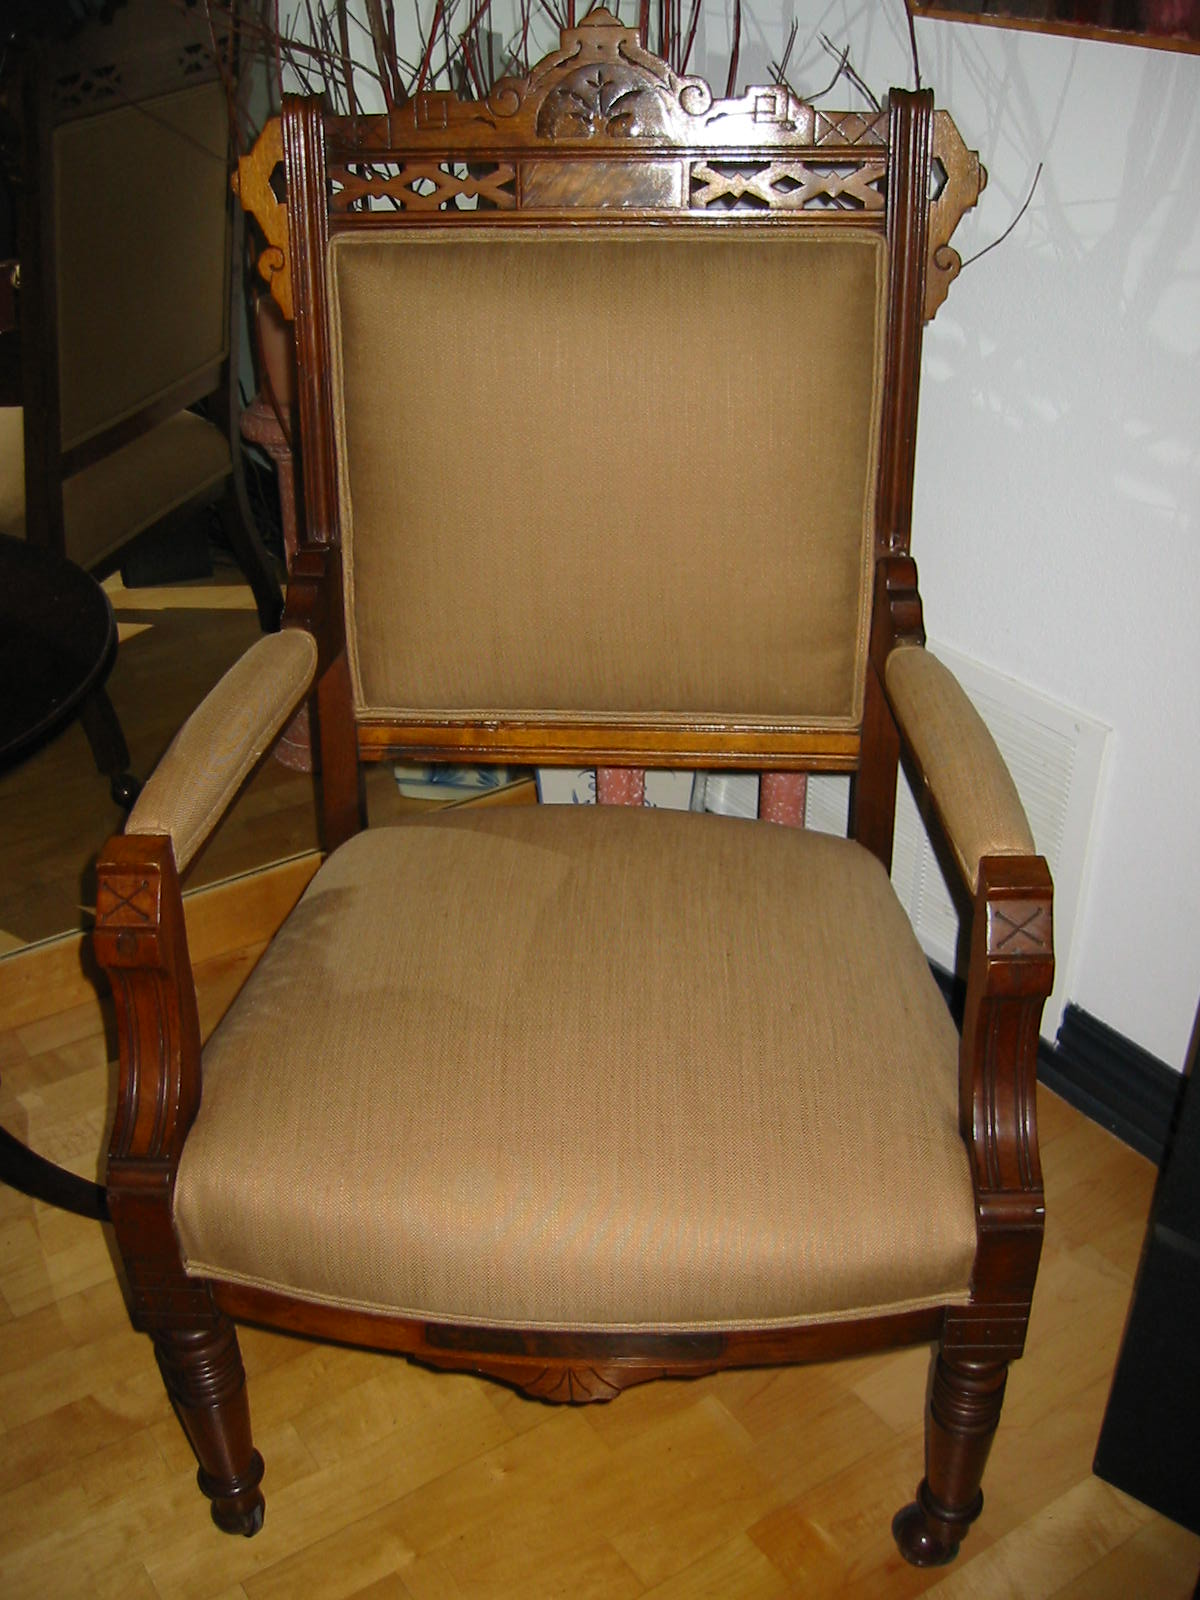 wood chairs for sale beach amazon empire arm chair crested updated upholstery